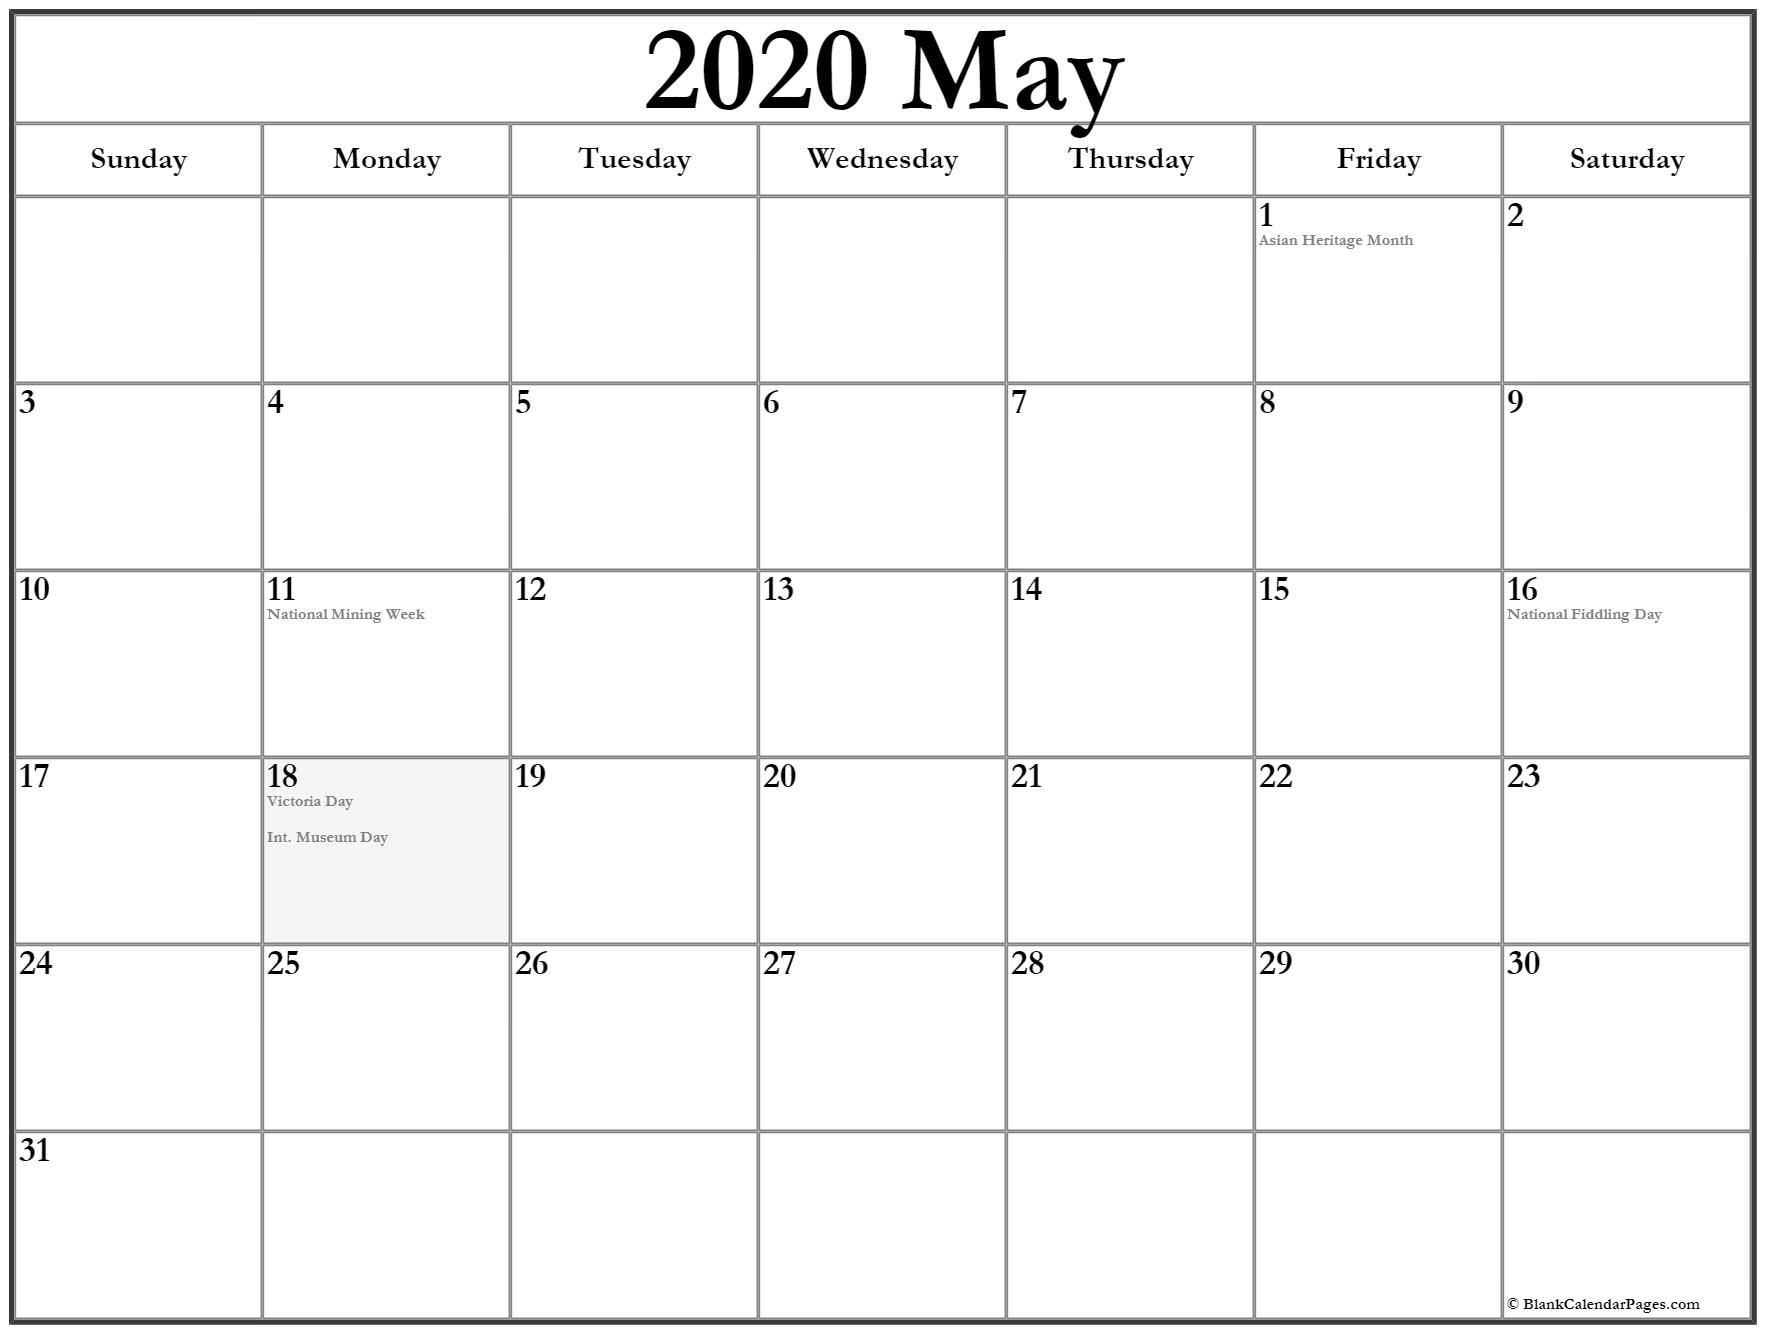 Collection Of May 2020 Calendars With Holidays-2020 May All Holidays